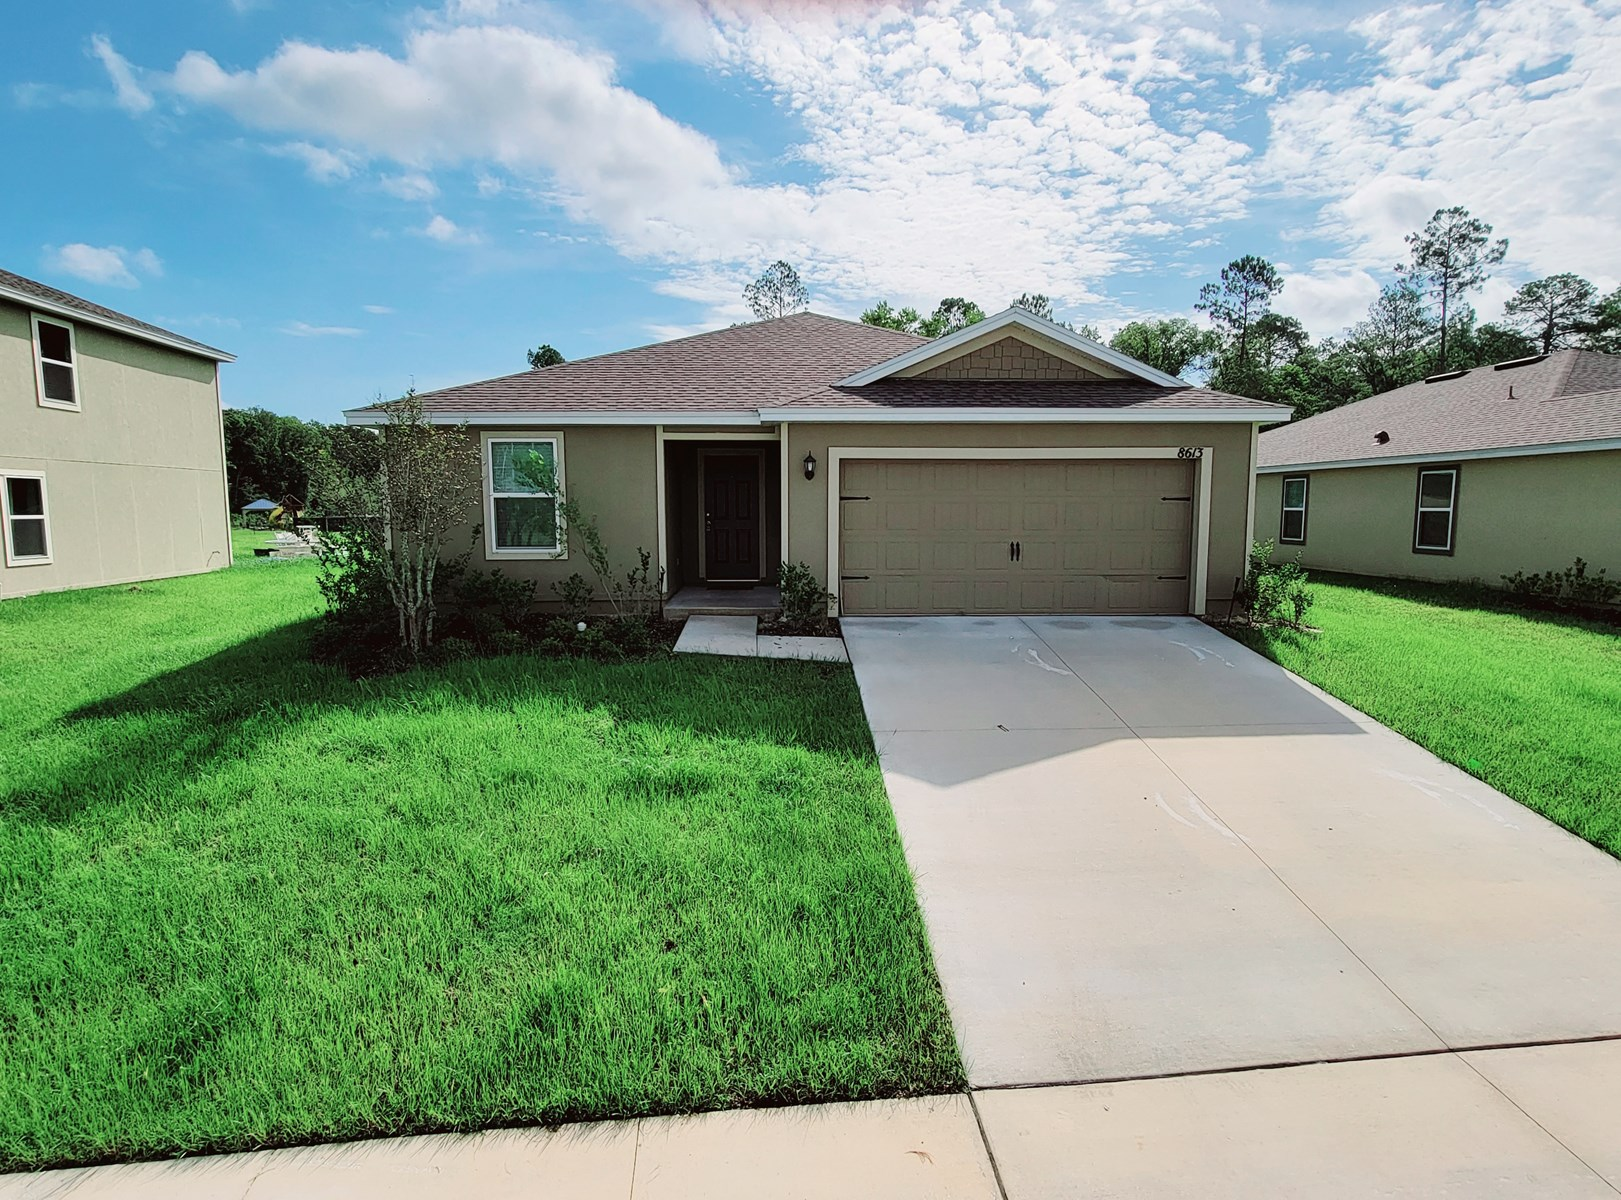 NORTH FLORIDA HOME FOR SALE